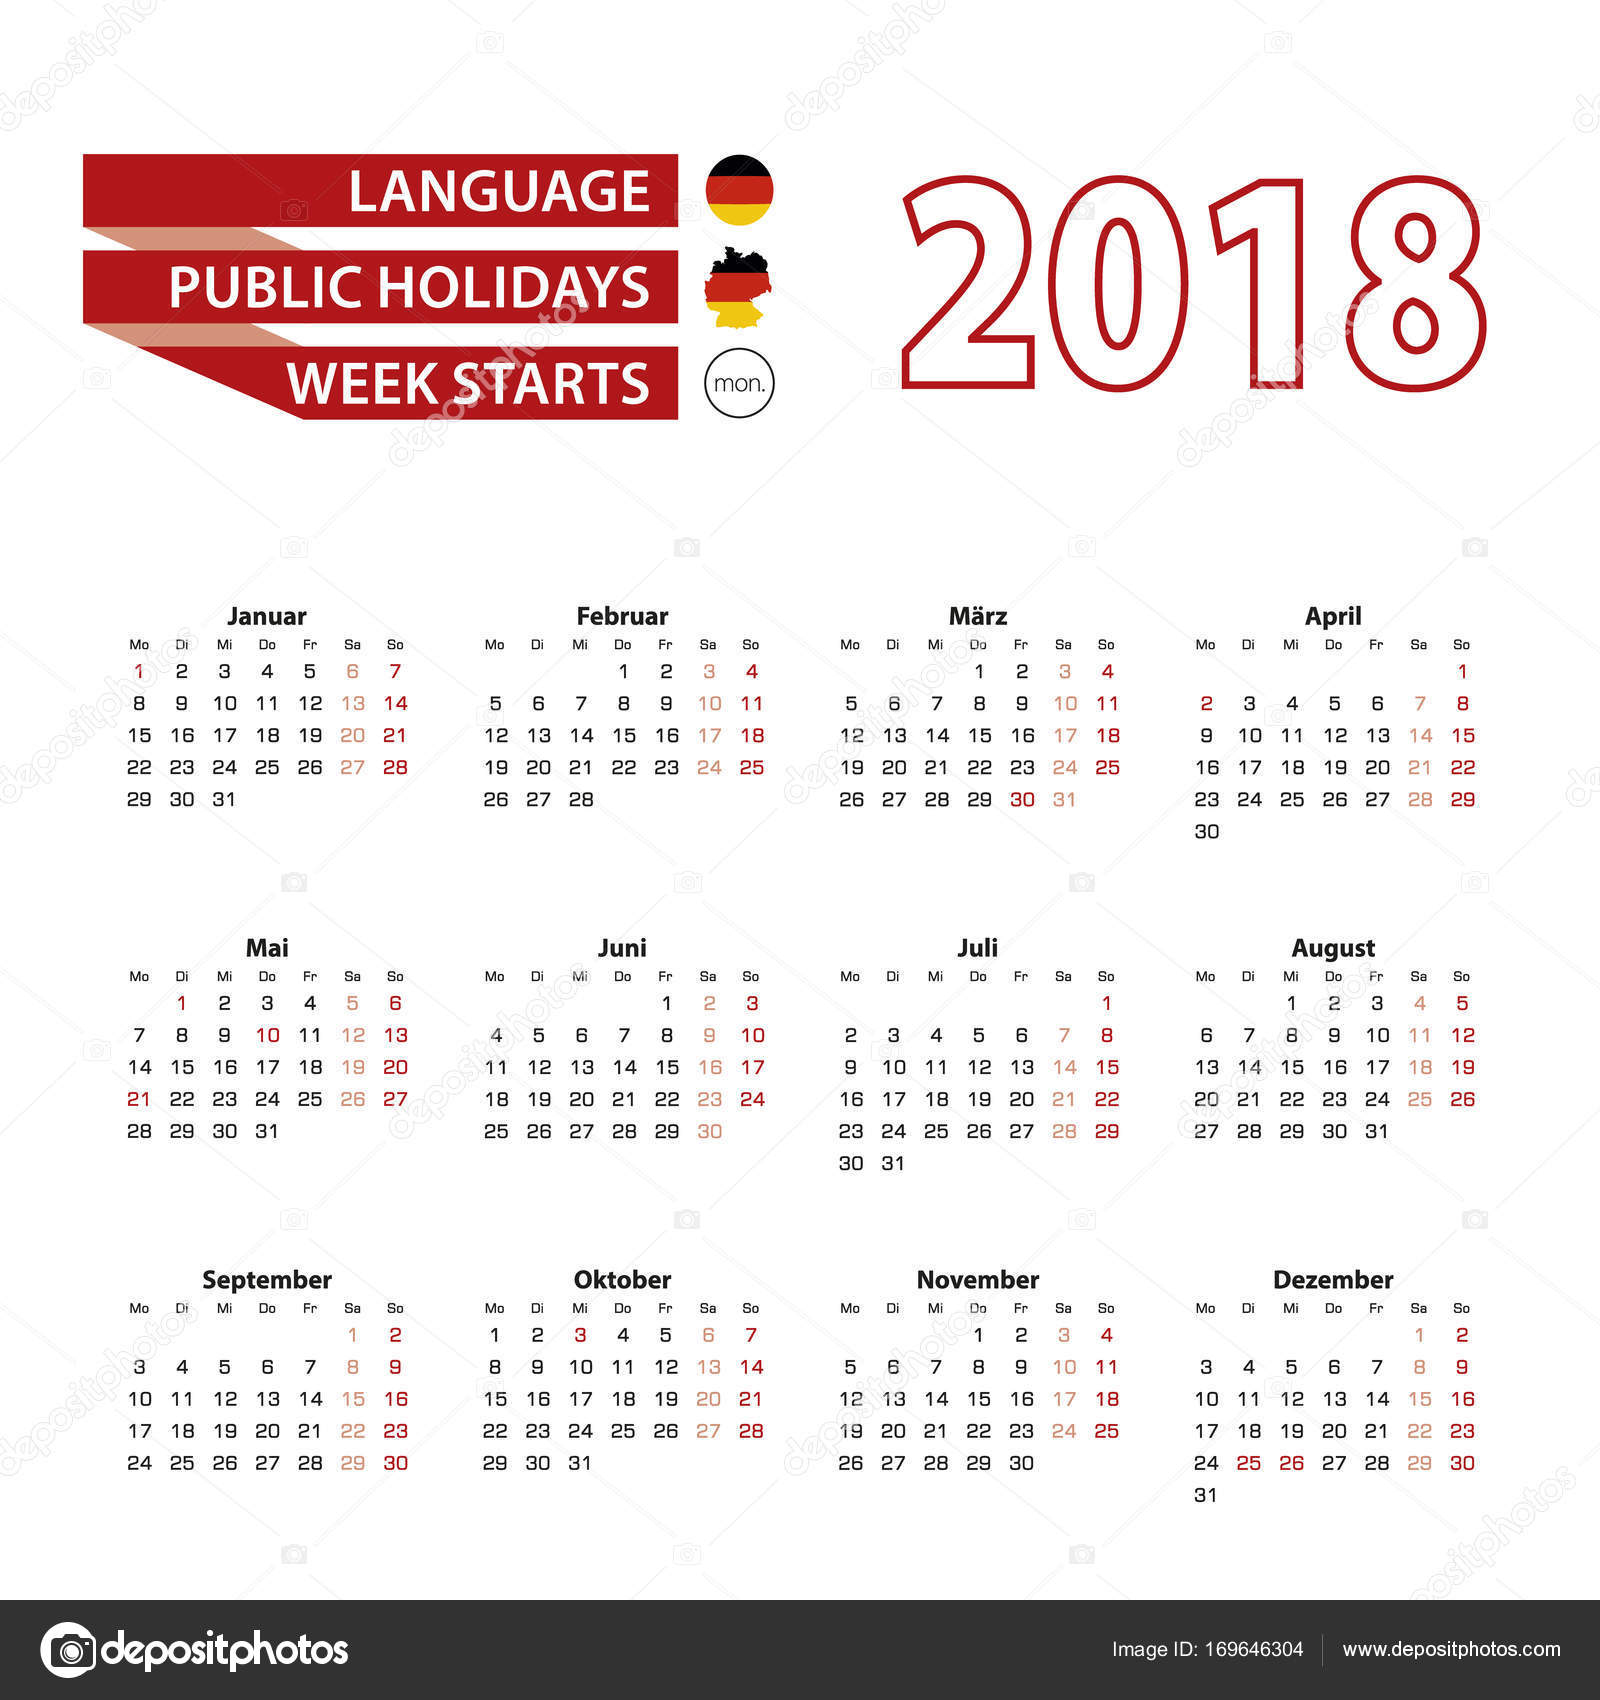 calendar 2018 in germany language with public holidays the country of german in year 2018 week starts from monday vector illustration vector by boldg